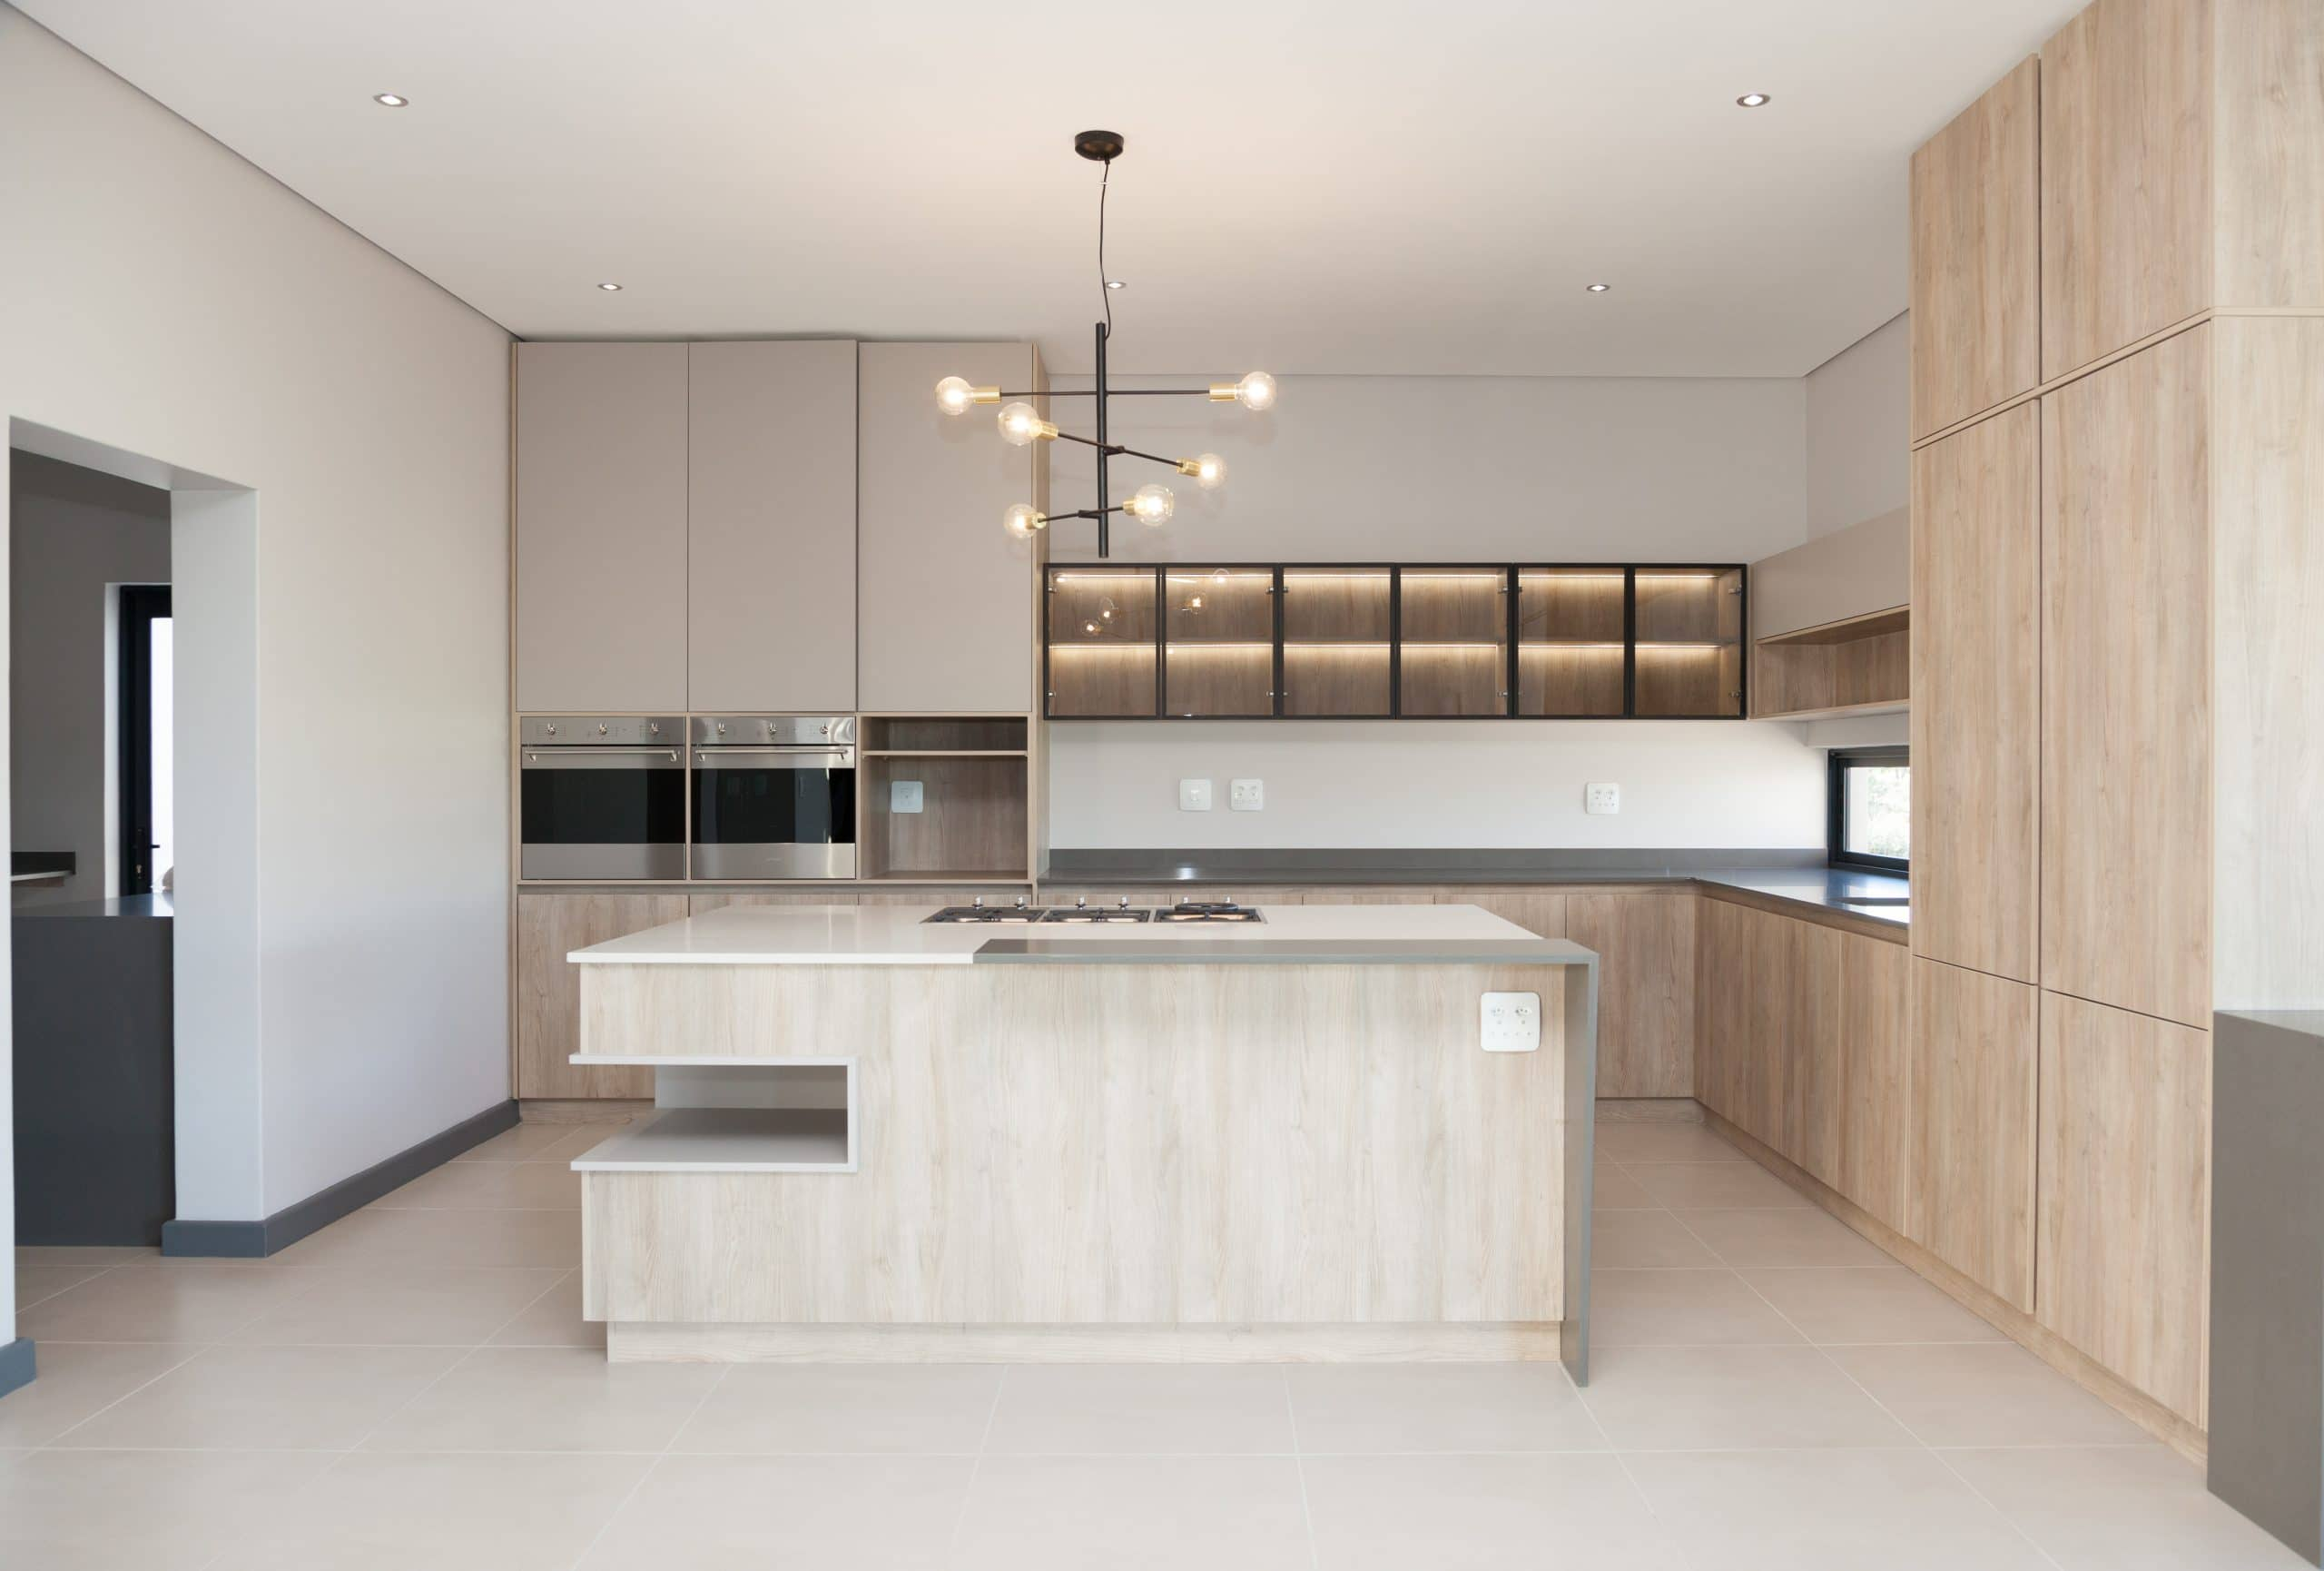 eleven past pendant over kitchen integrated appliances fridge langebaan country estate